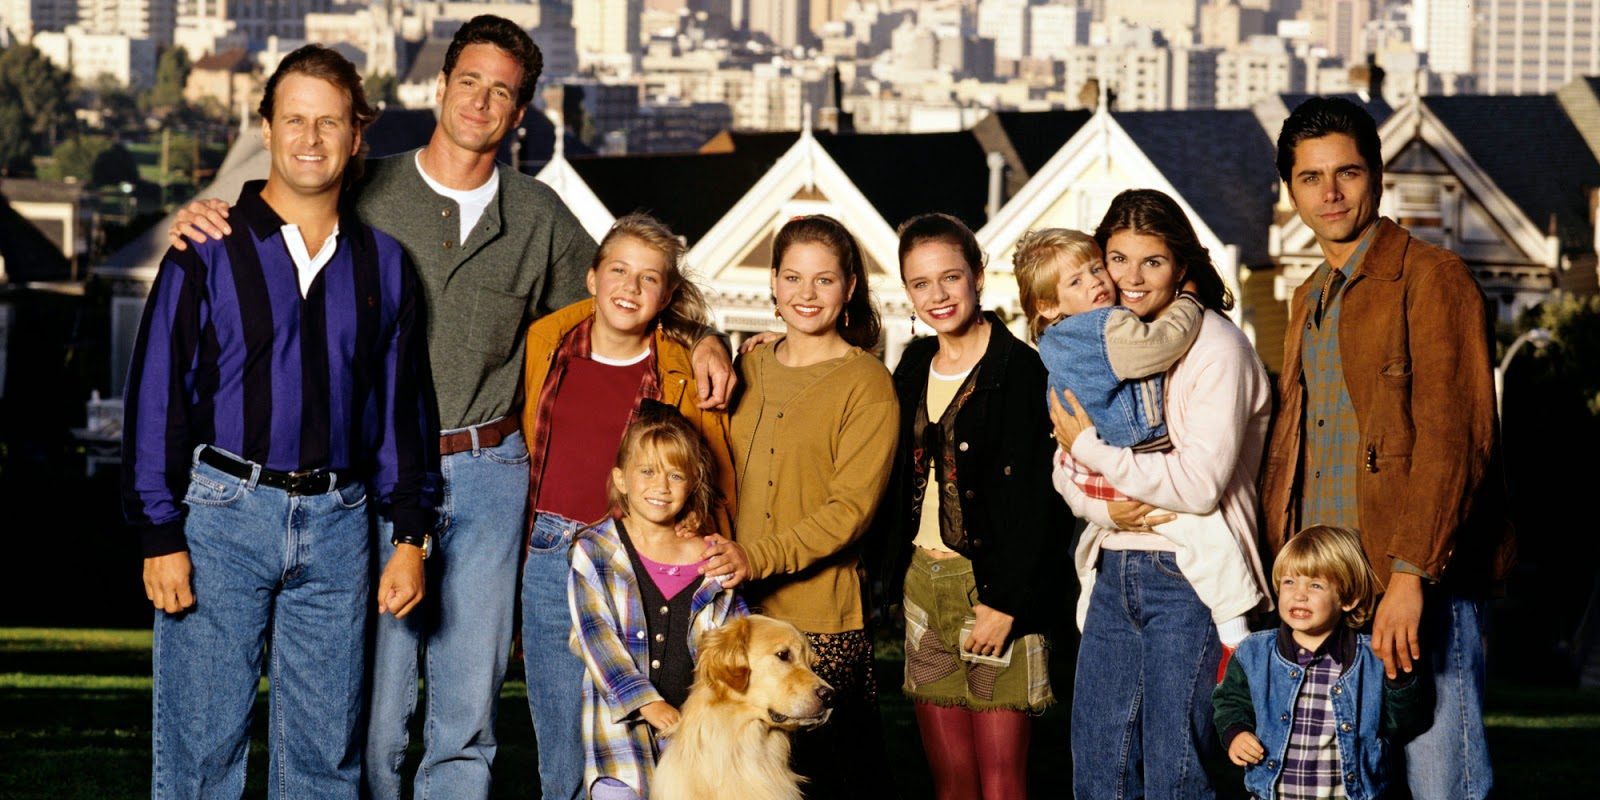 Lori Lughlin, John Stamos, Dave Coulier, Bob Saget, Candace Cameron, Jodie Sweetin, Ashley Olsen, Mary Kate Olsen